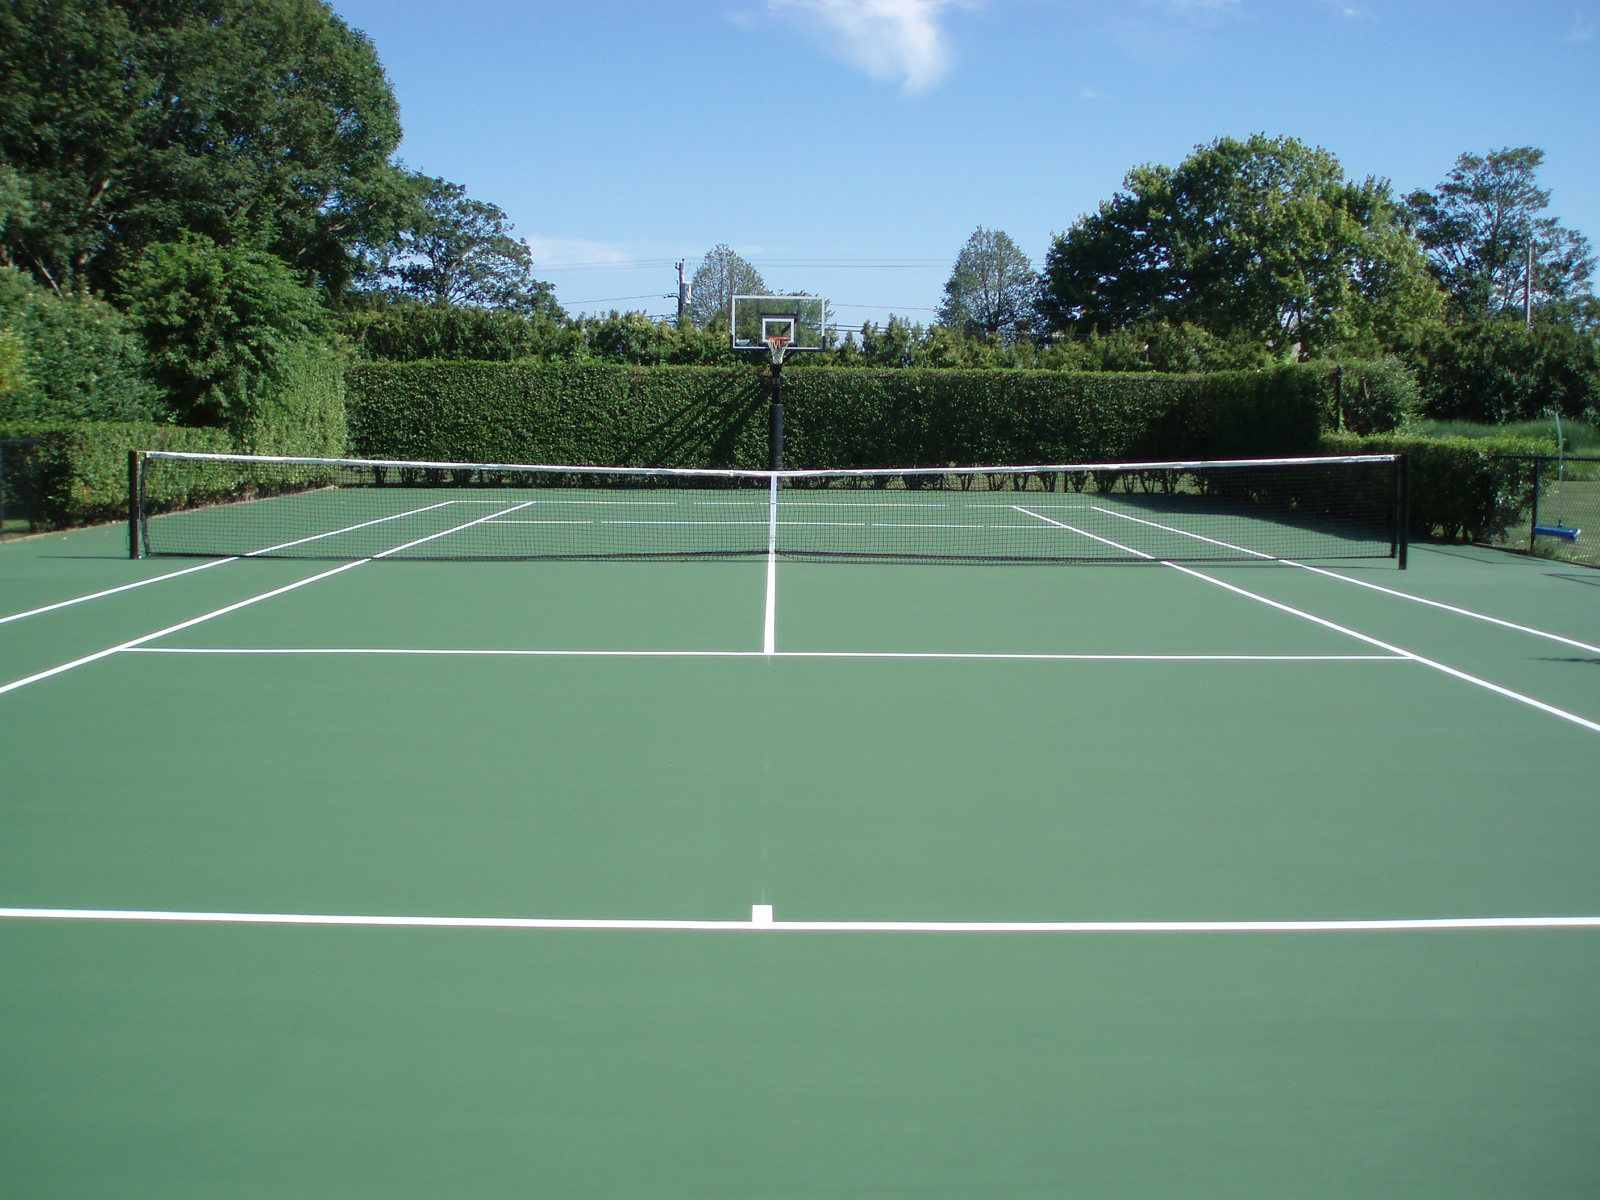 Tennis I Want To Try This Sometime Definitely On The Sports Bucket List Private Tennis Court Tennis Court Tennis Workout